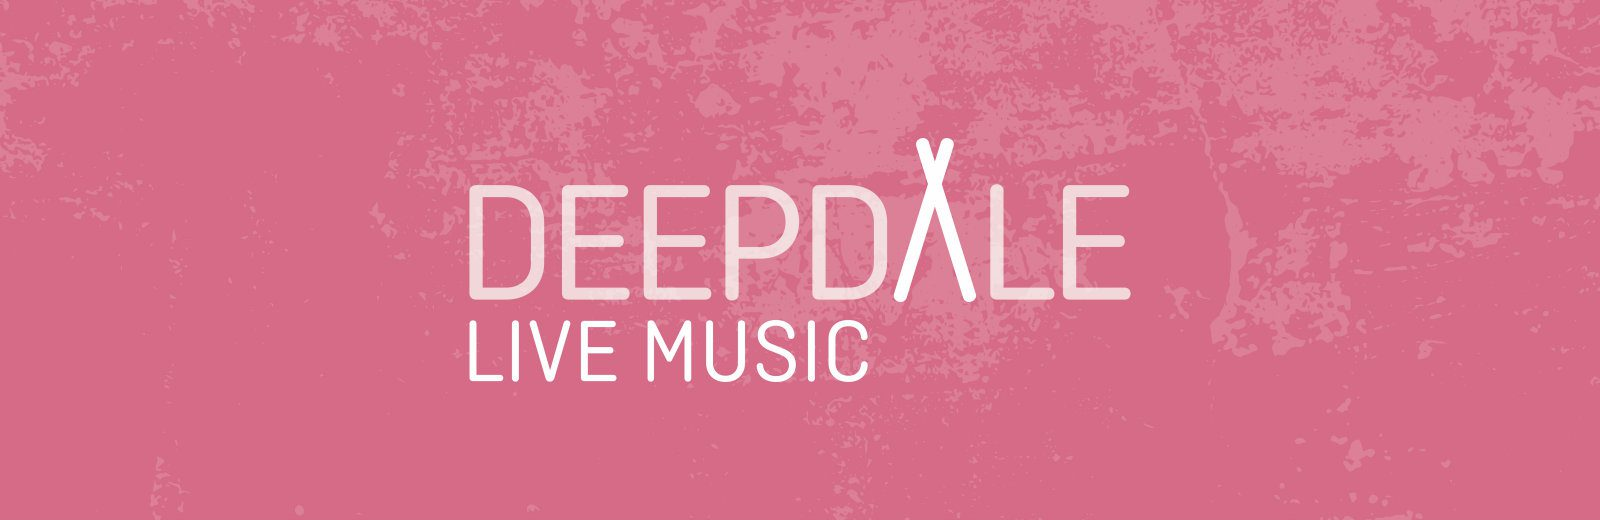 Deepdale Live Music